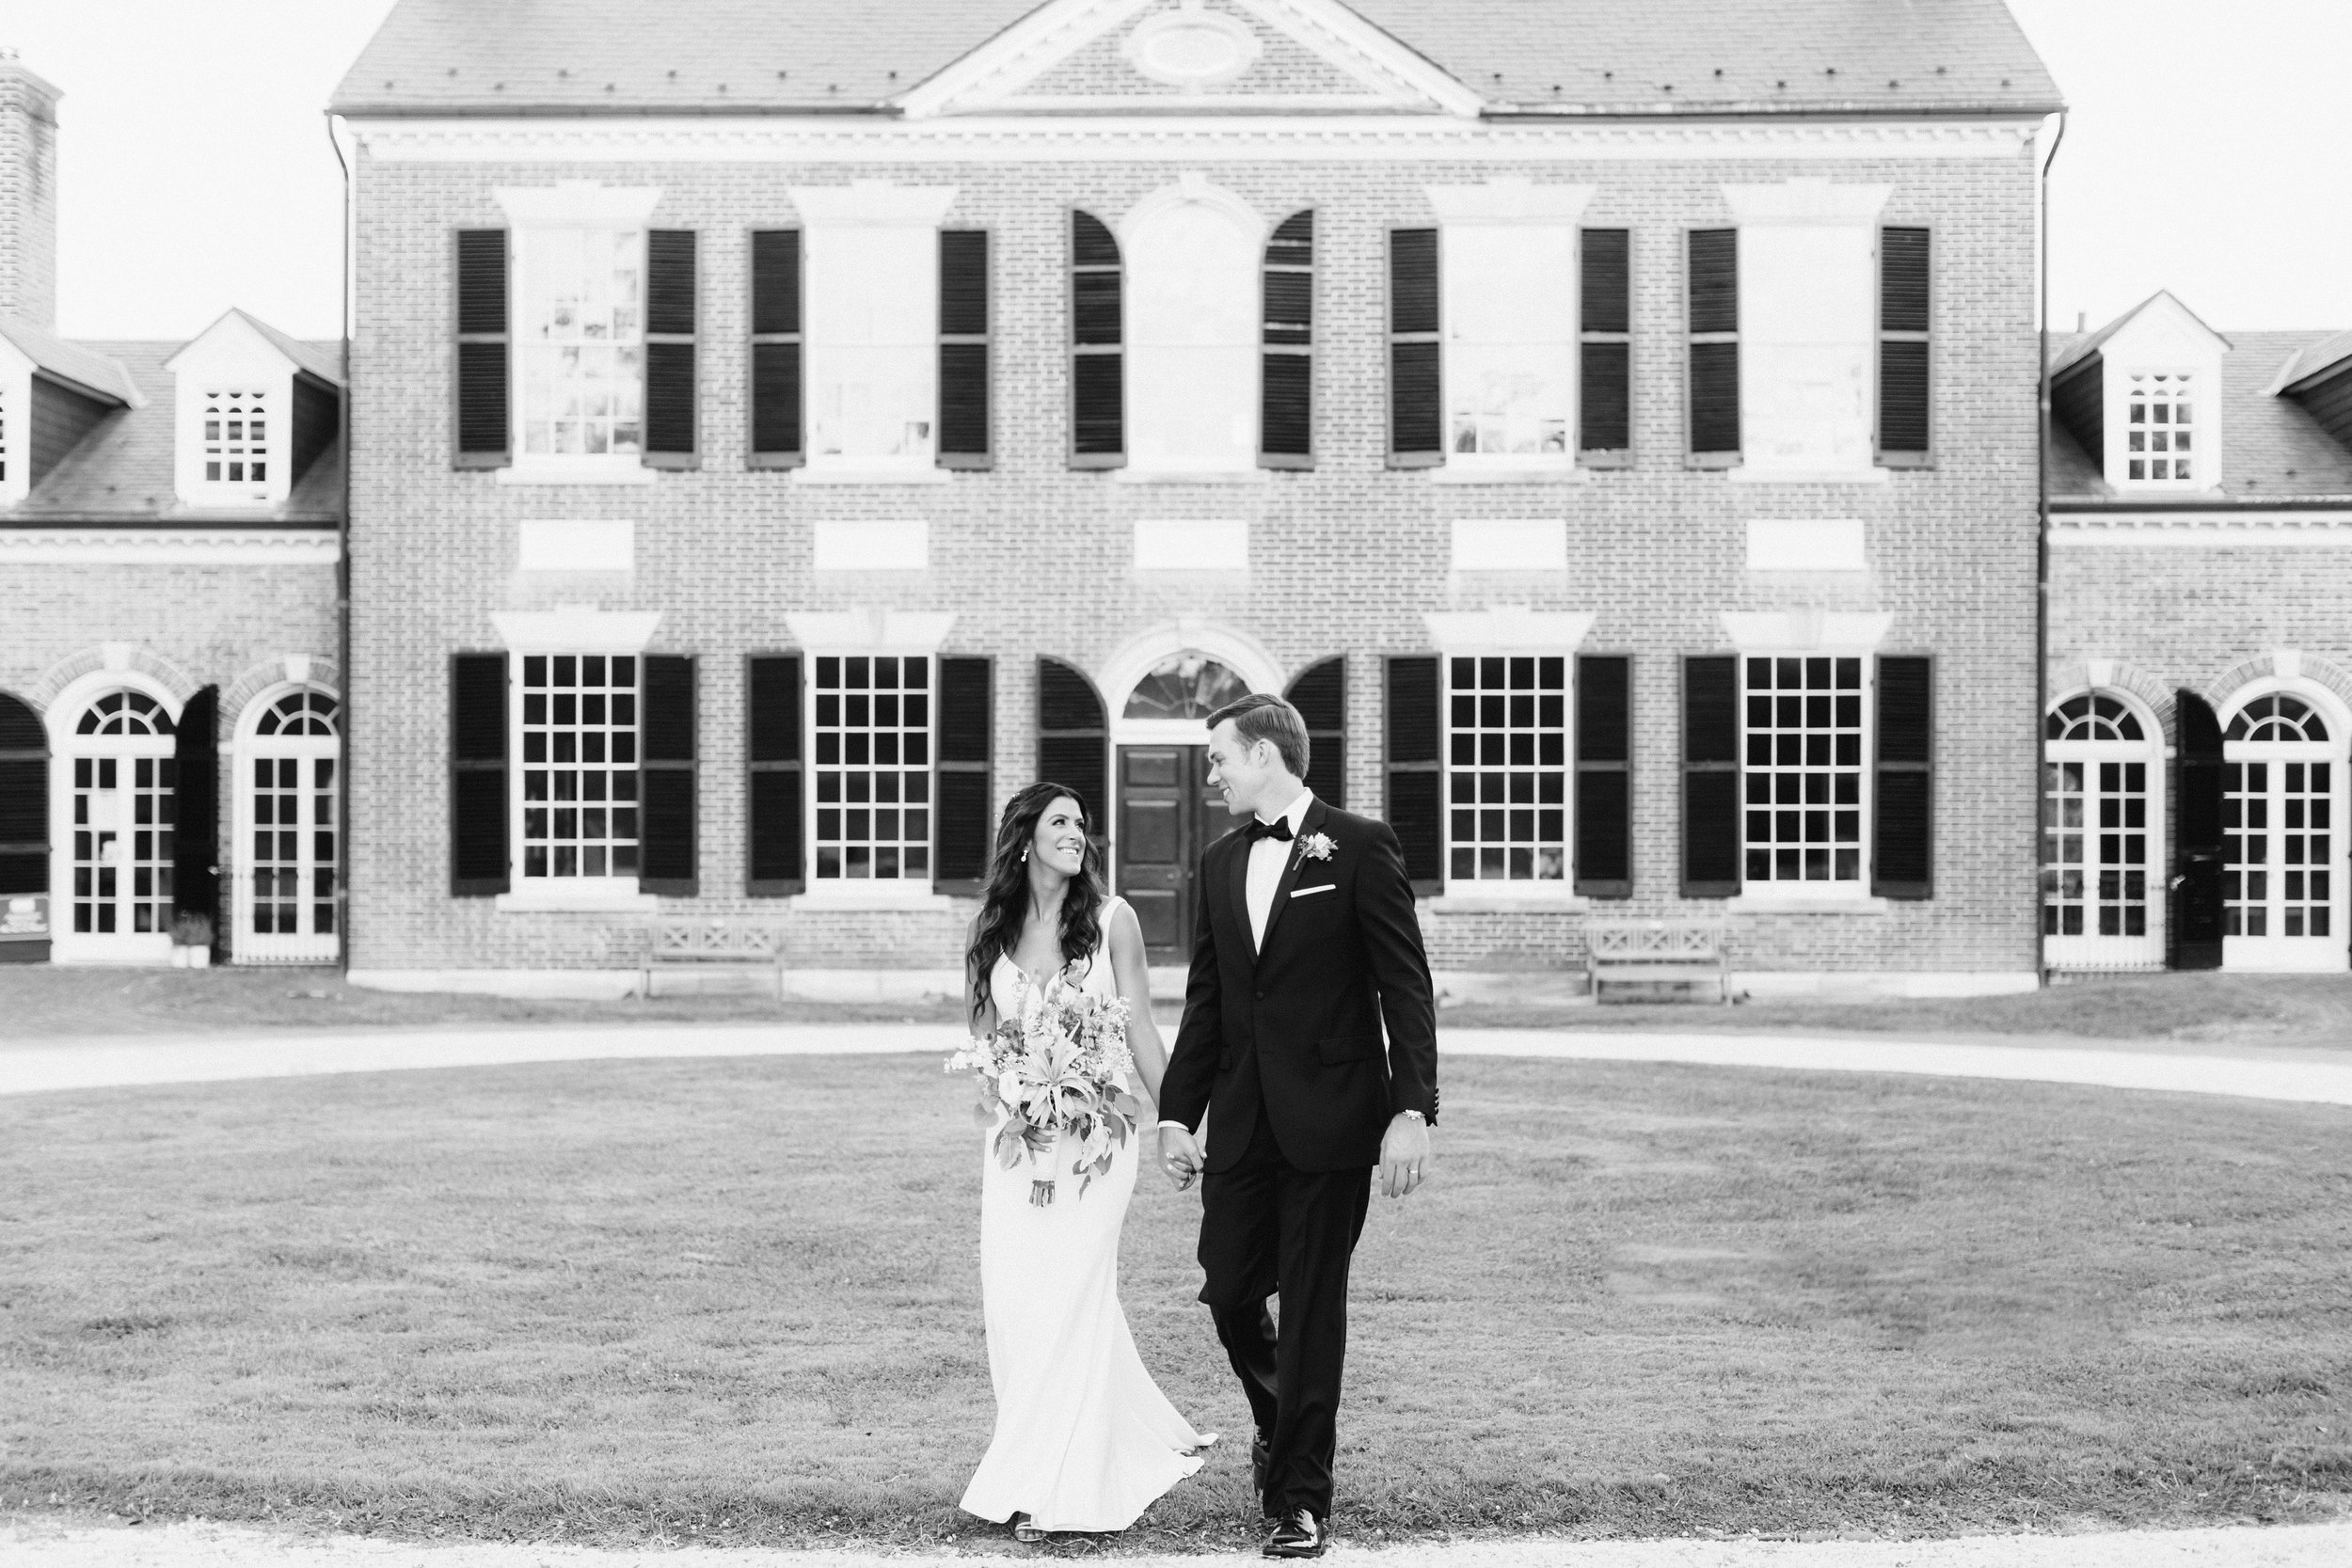 alexandria-virginia-film-wedding-photographer-woodlawn-plantation-lauren-and-cody-577.jpg